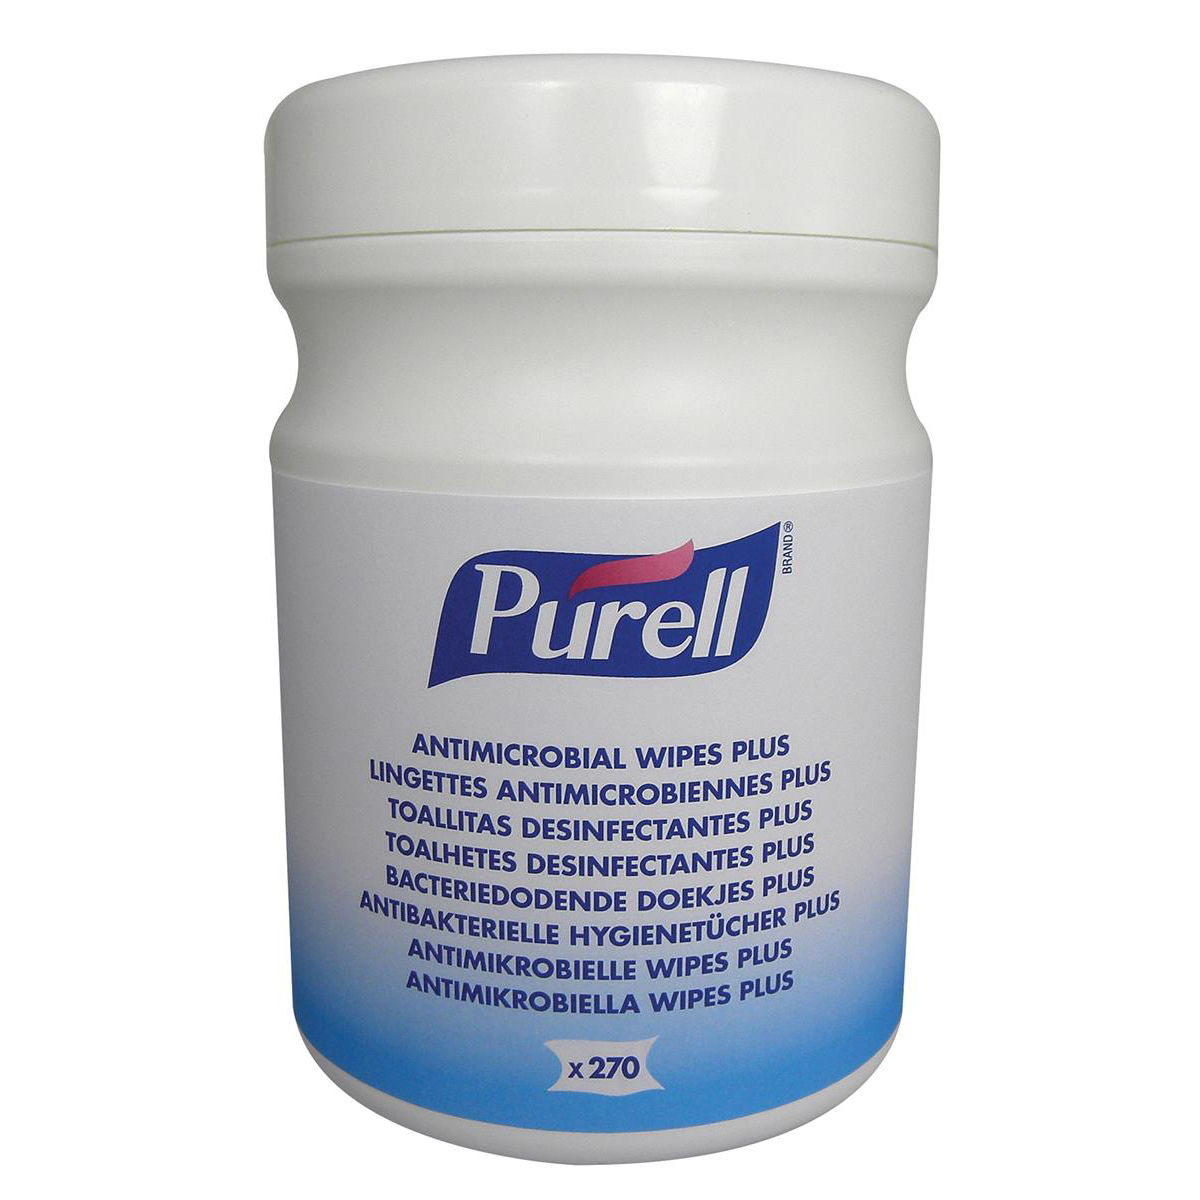 Purell Antimicrobial Wipes Canister Ref P06589 270 Wipes